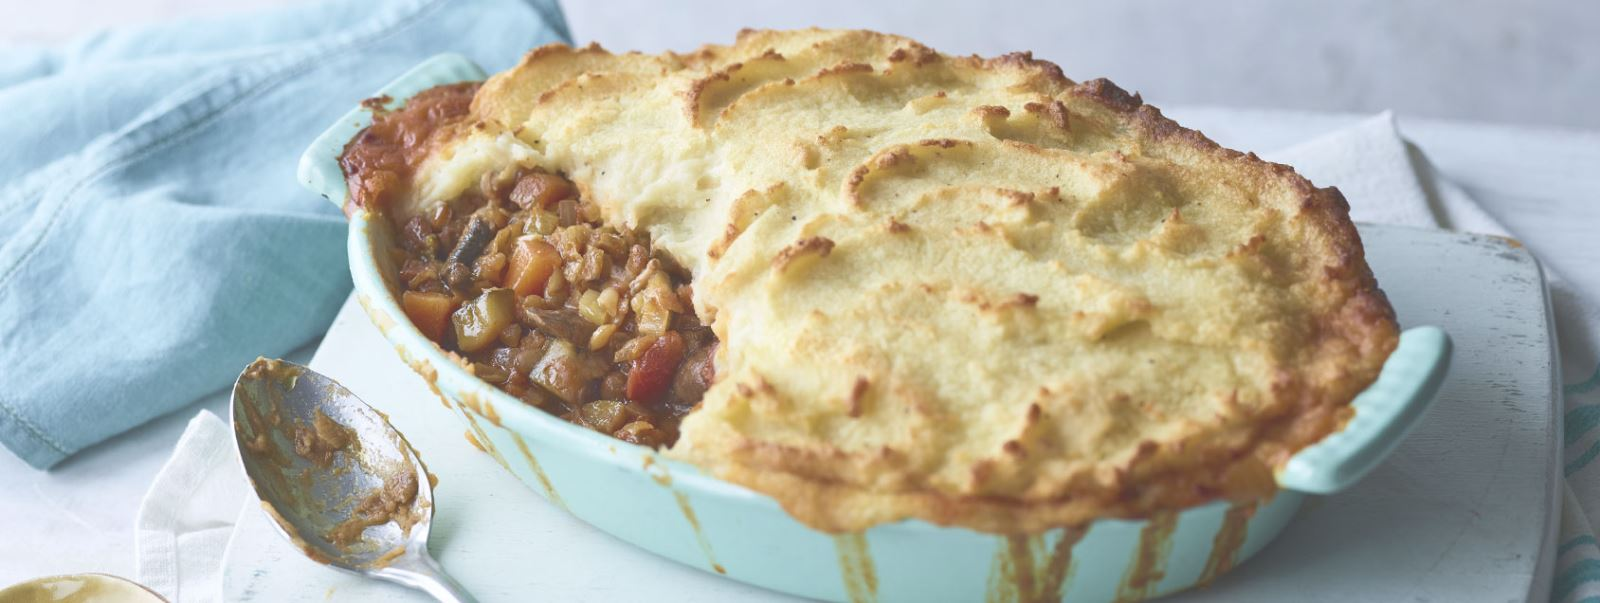 Shephards Pie at Parkside House